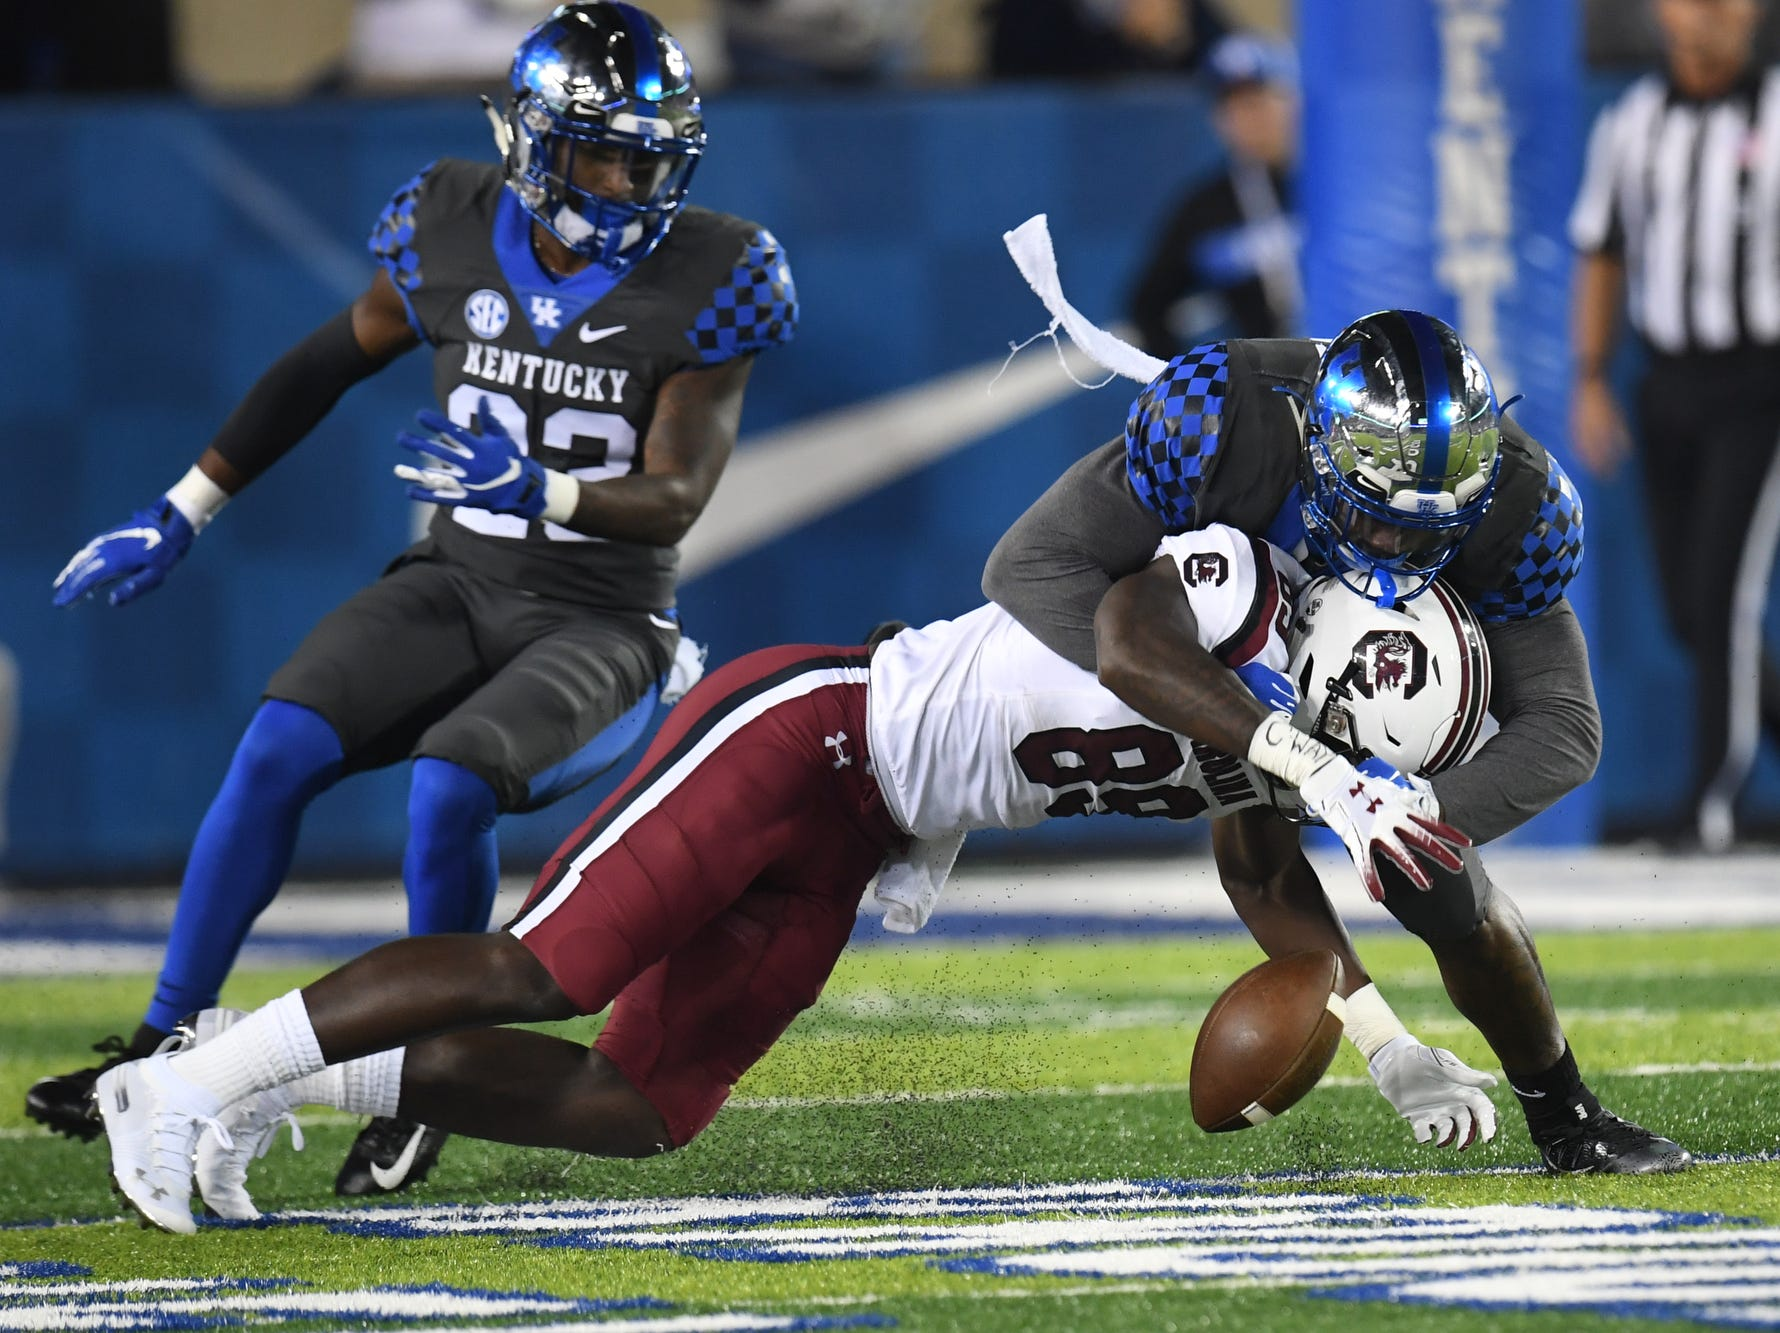 UK defense breaks up a pass during the University of Kentucky football game against South Carolina at Kroger Field in Lexington, Kentucky on Saturday, September 29, 2018.